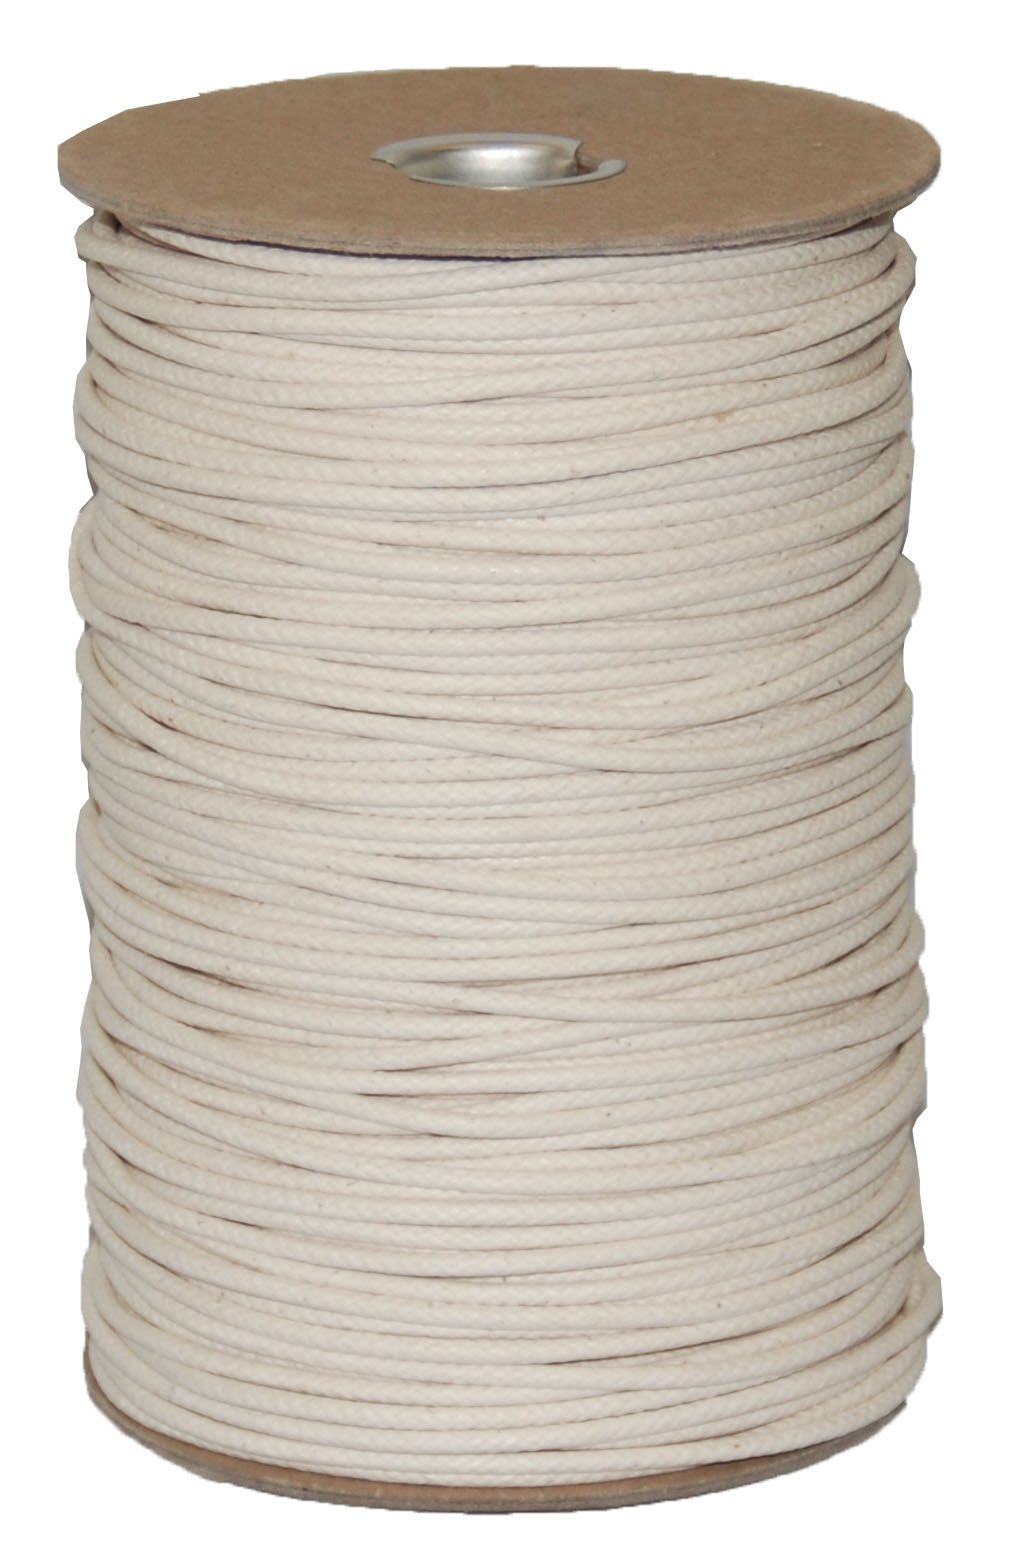 T.W Evans Cordage 02-185 Number-18 Cotton Seine Mason Line with 550-Feet Tube by T.W . Evans Cordage Co.